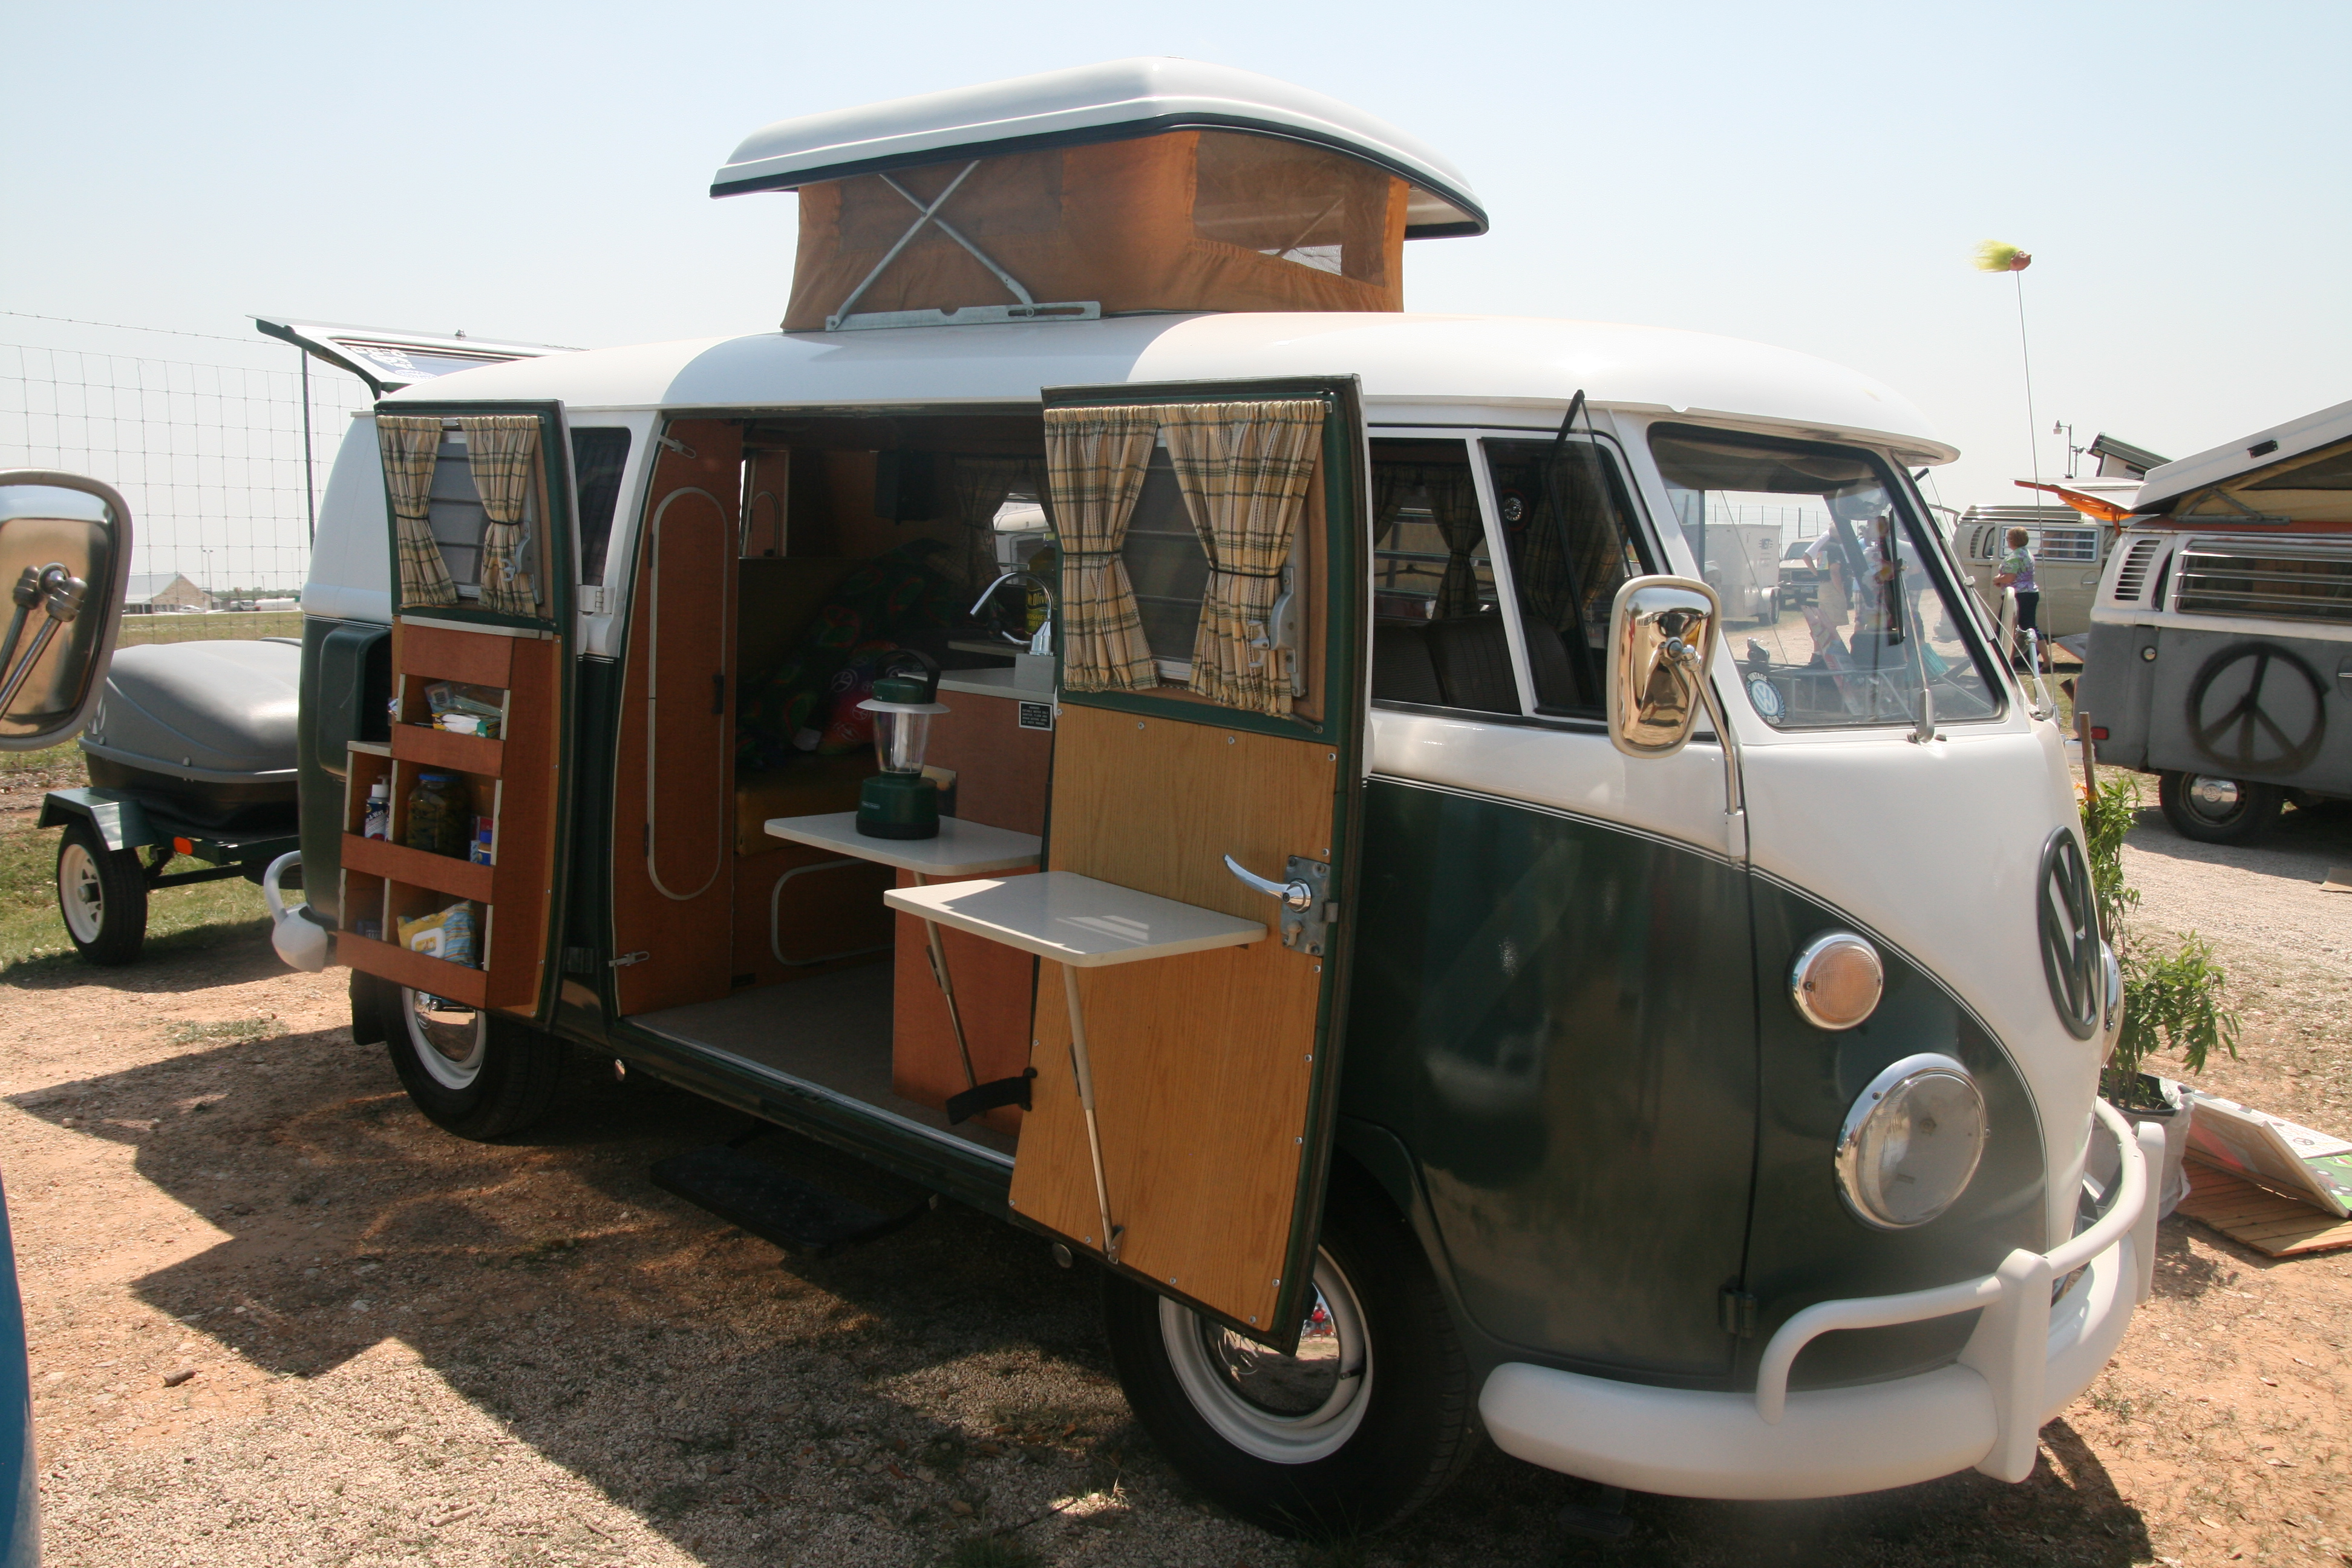 bus westfalia volkswagen second vw i was camper the type pin owner renovated